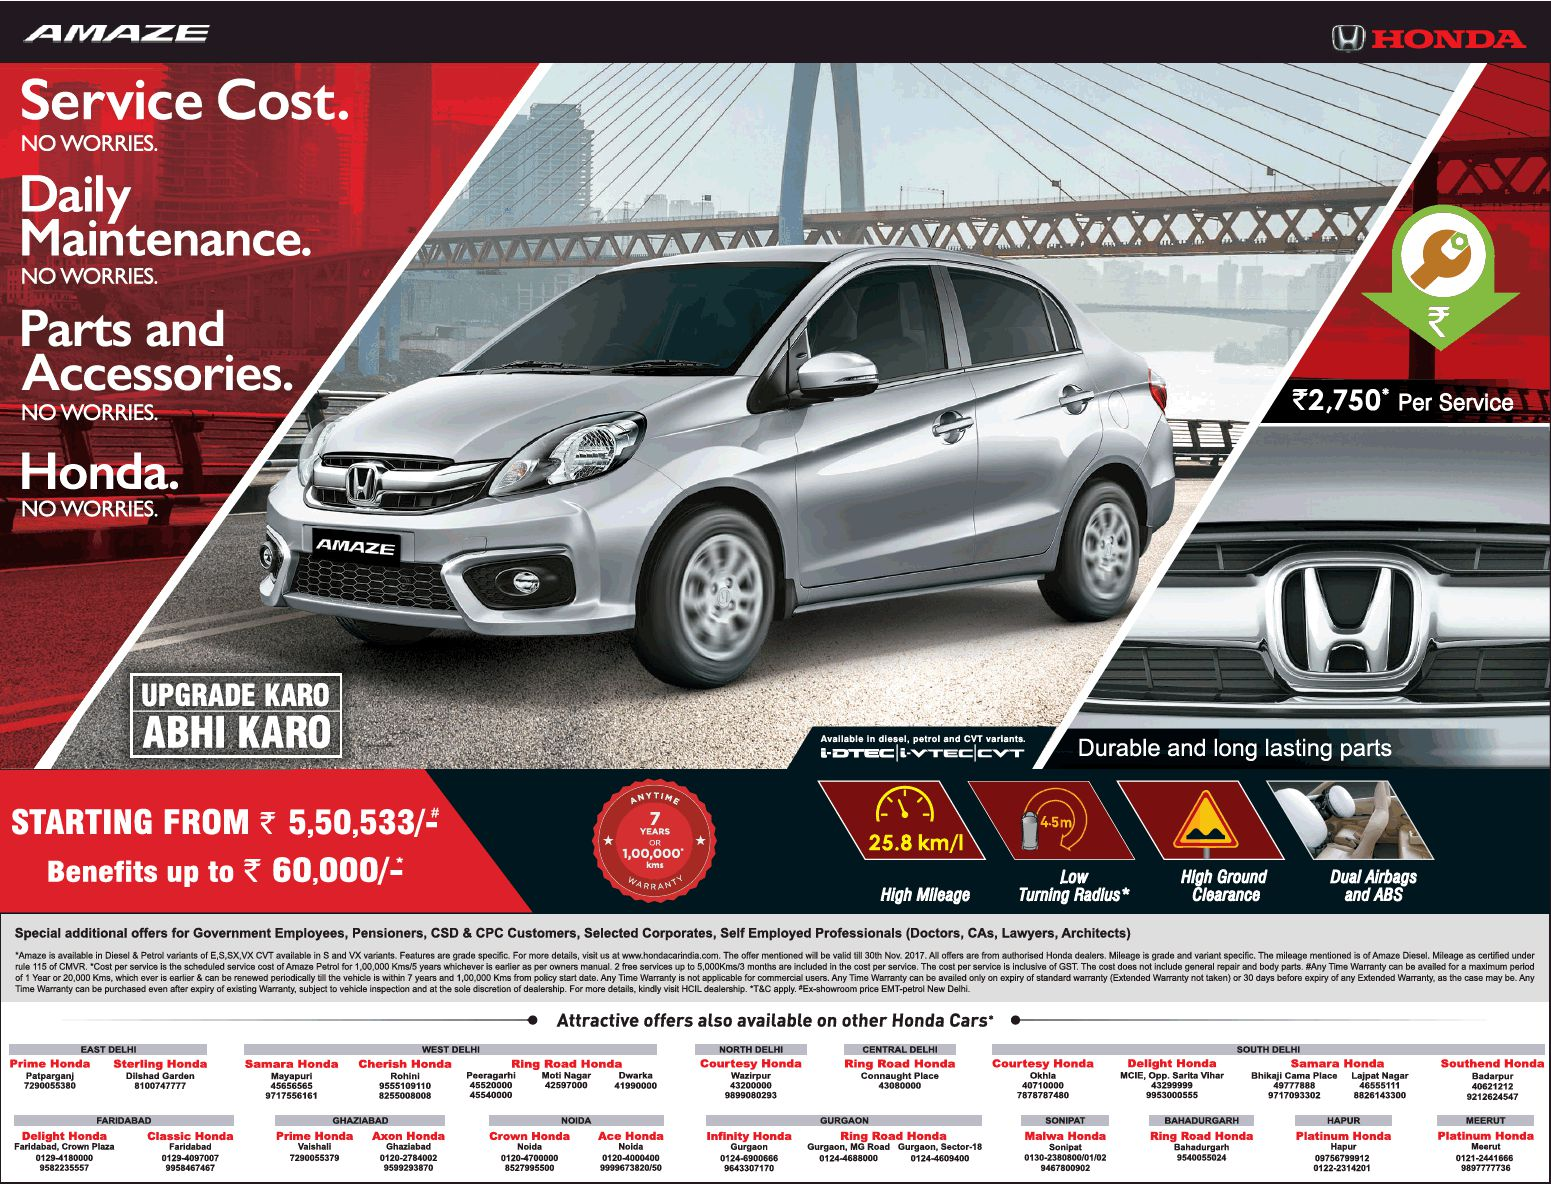 Honda Amaze Now Starting From Rs 5 50 Lakh Benefits Up To Rs